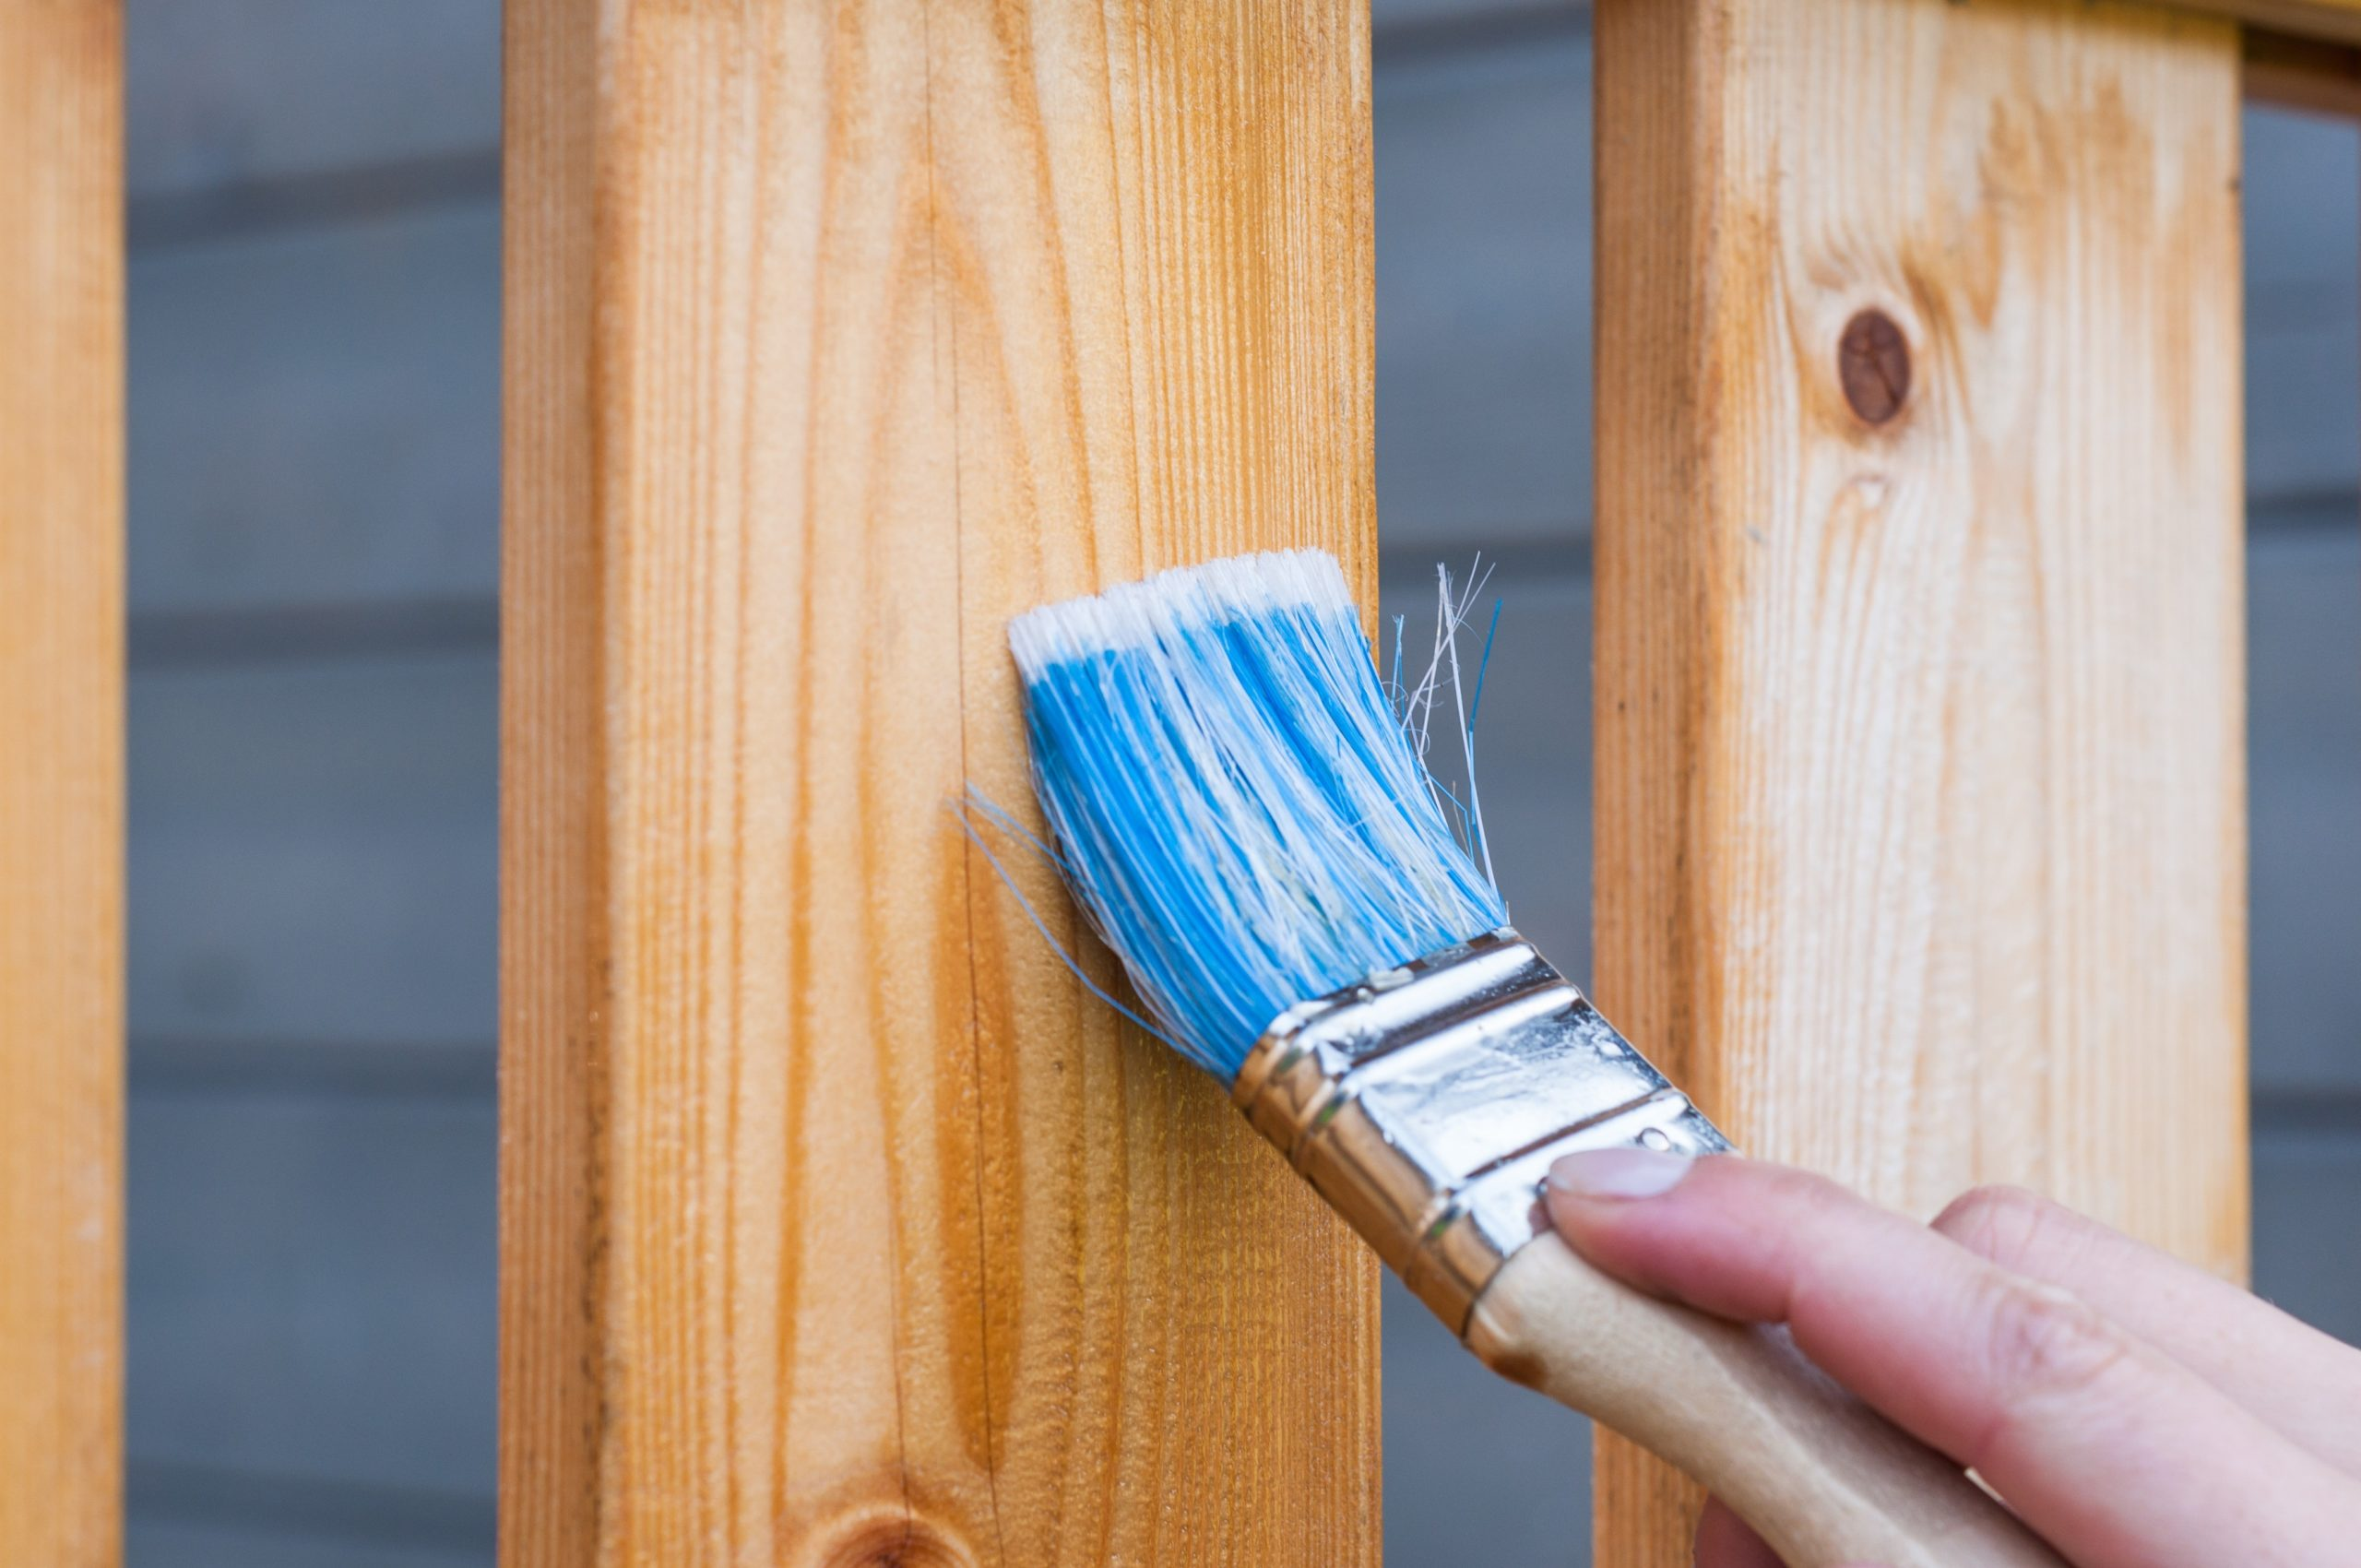 painting varnish on a fence board with a blue bristled paint bruch